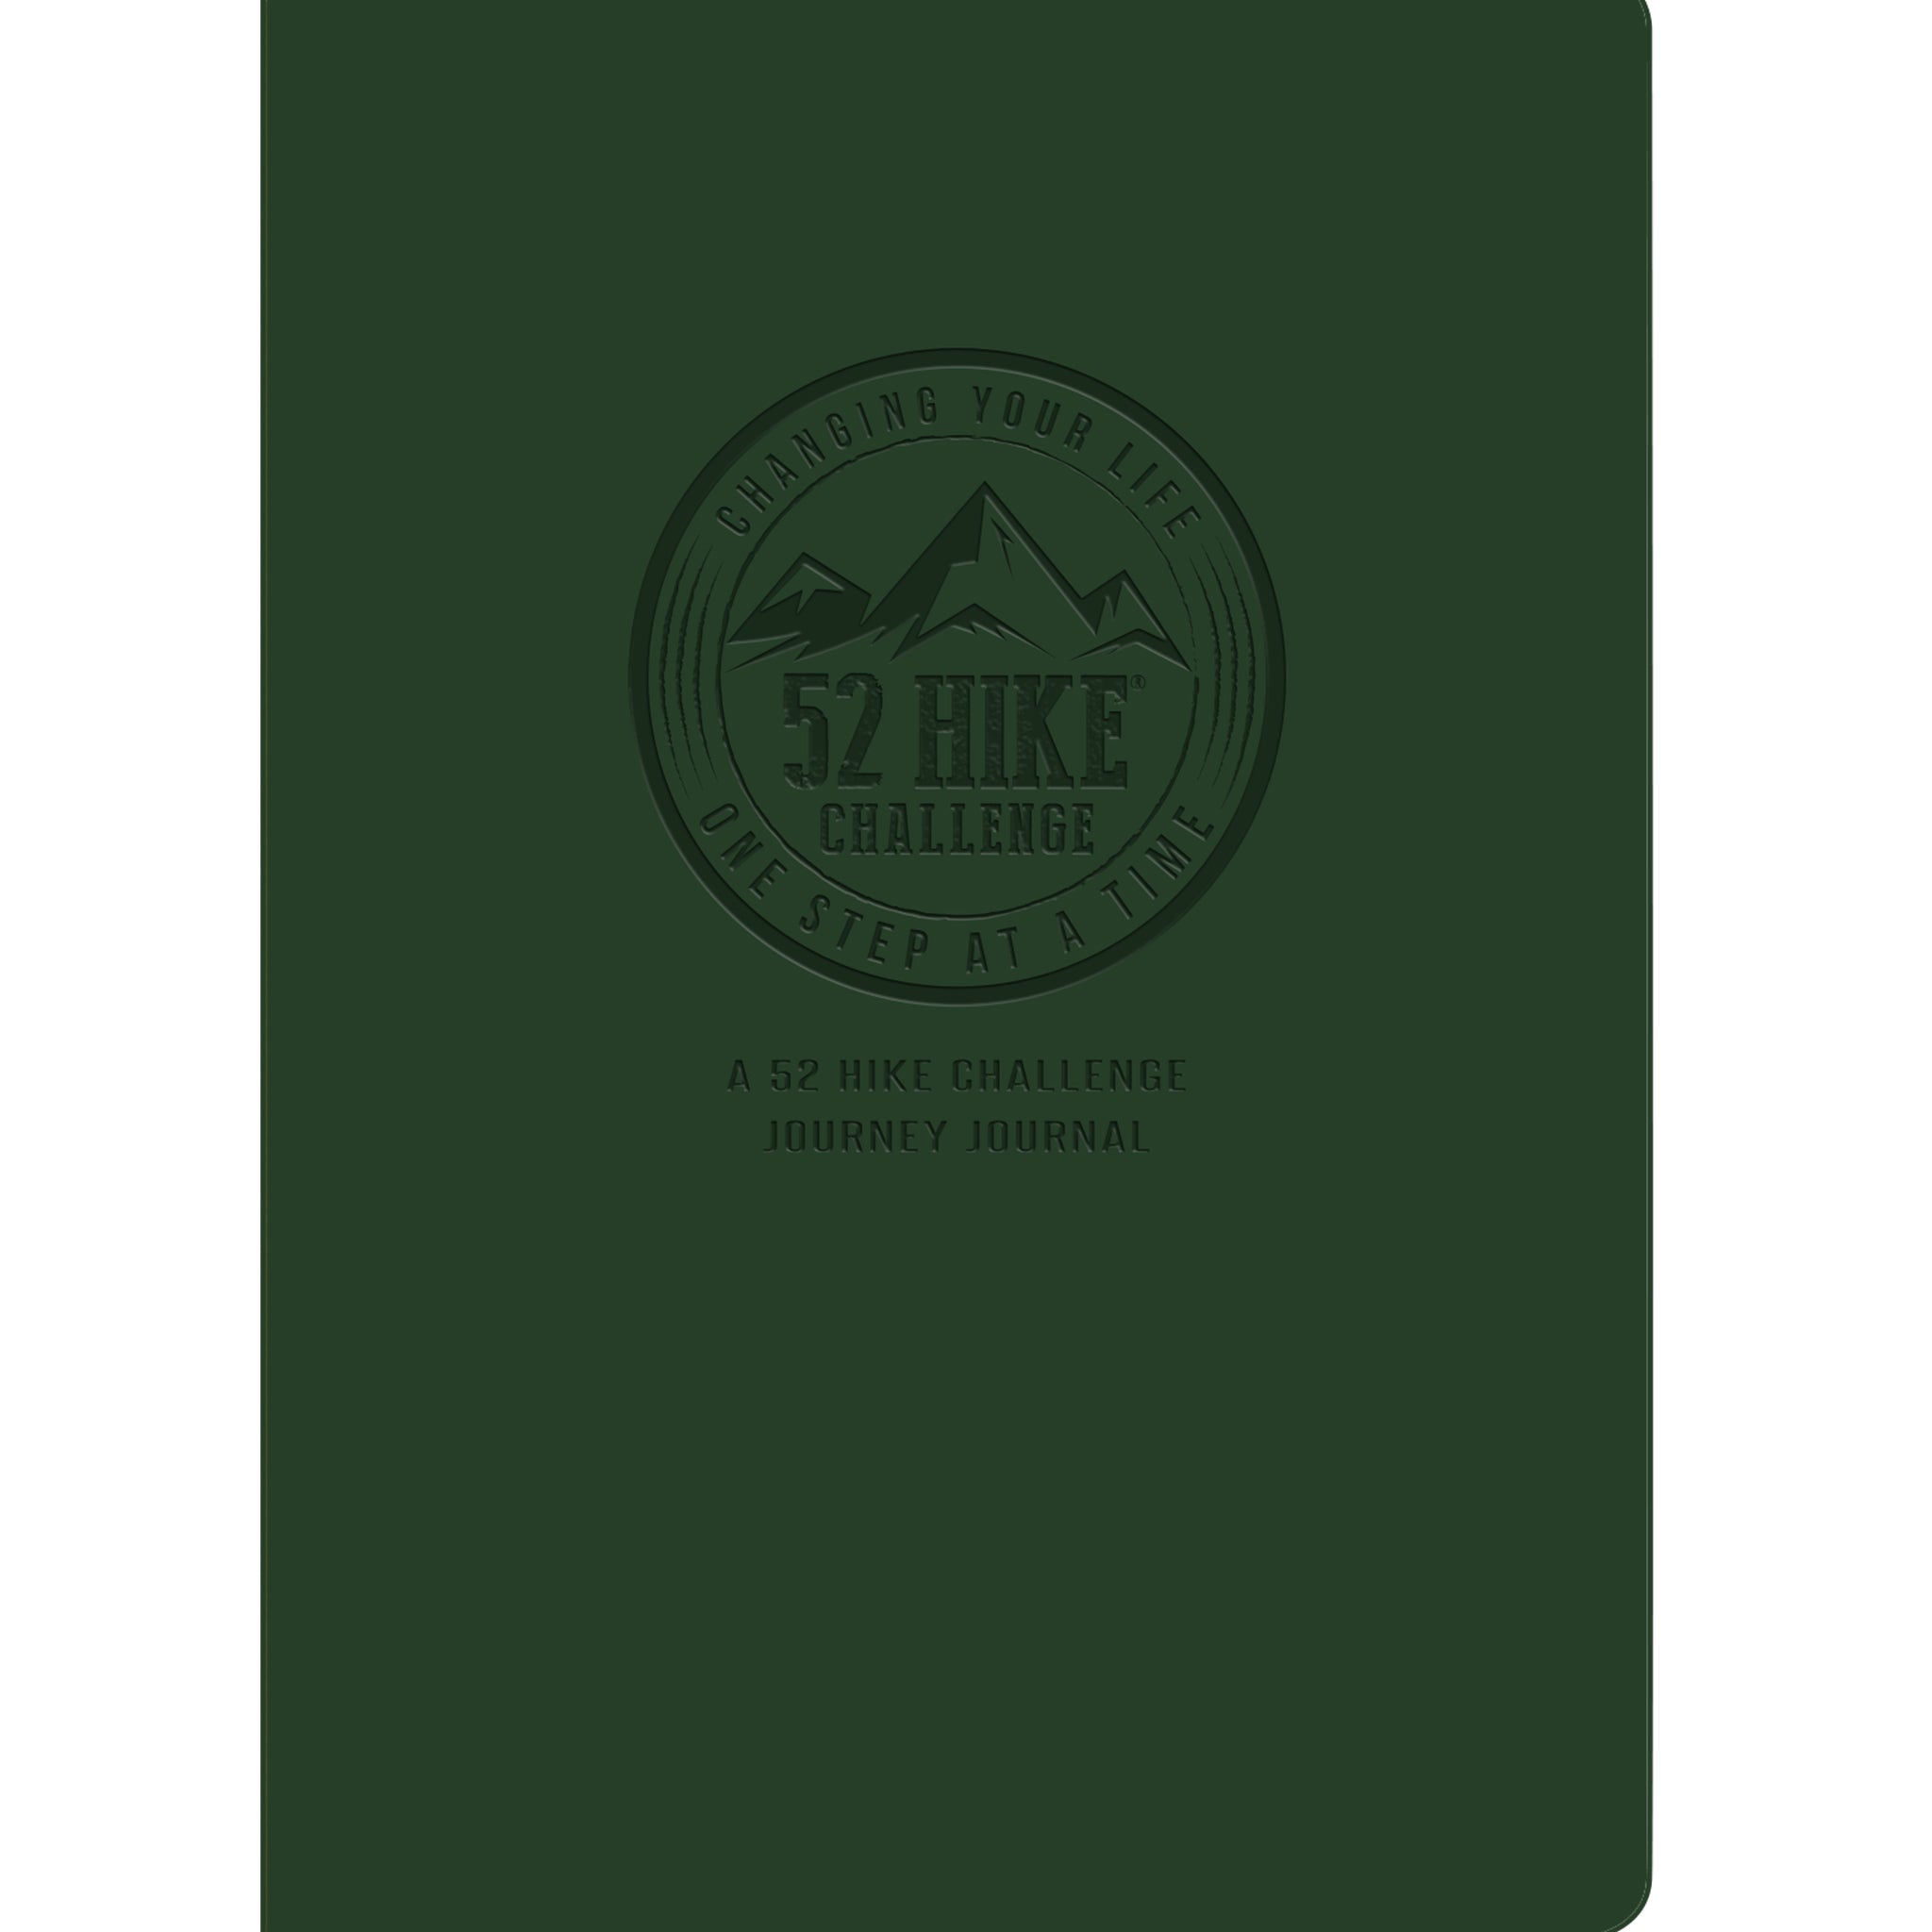 52 Hike Challenge Journey Journal